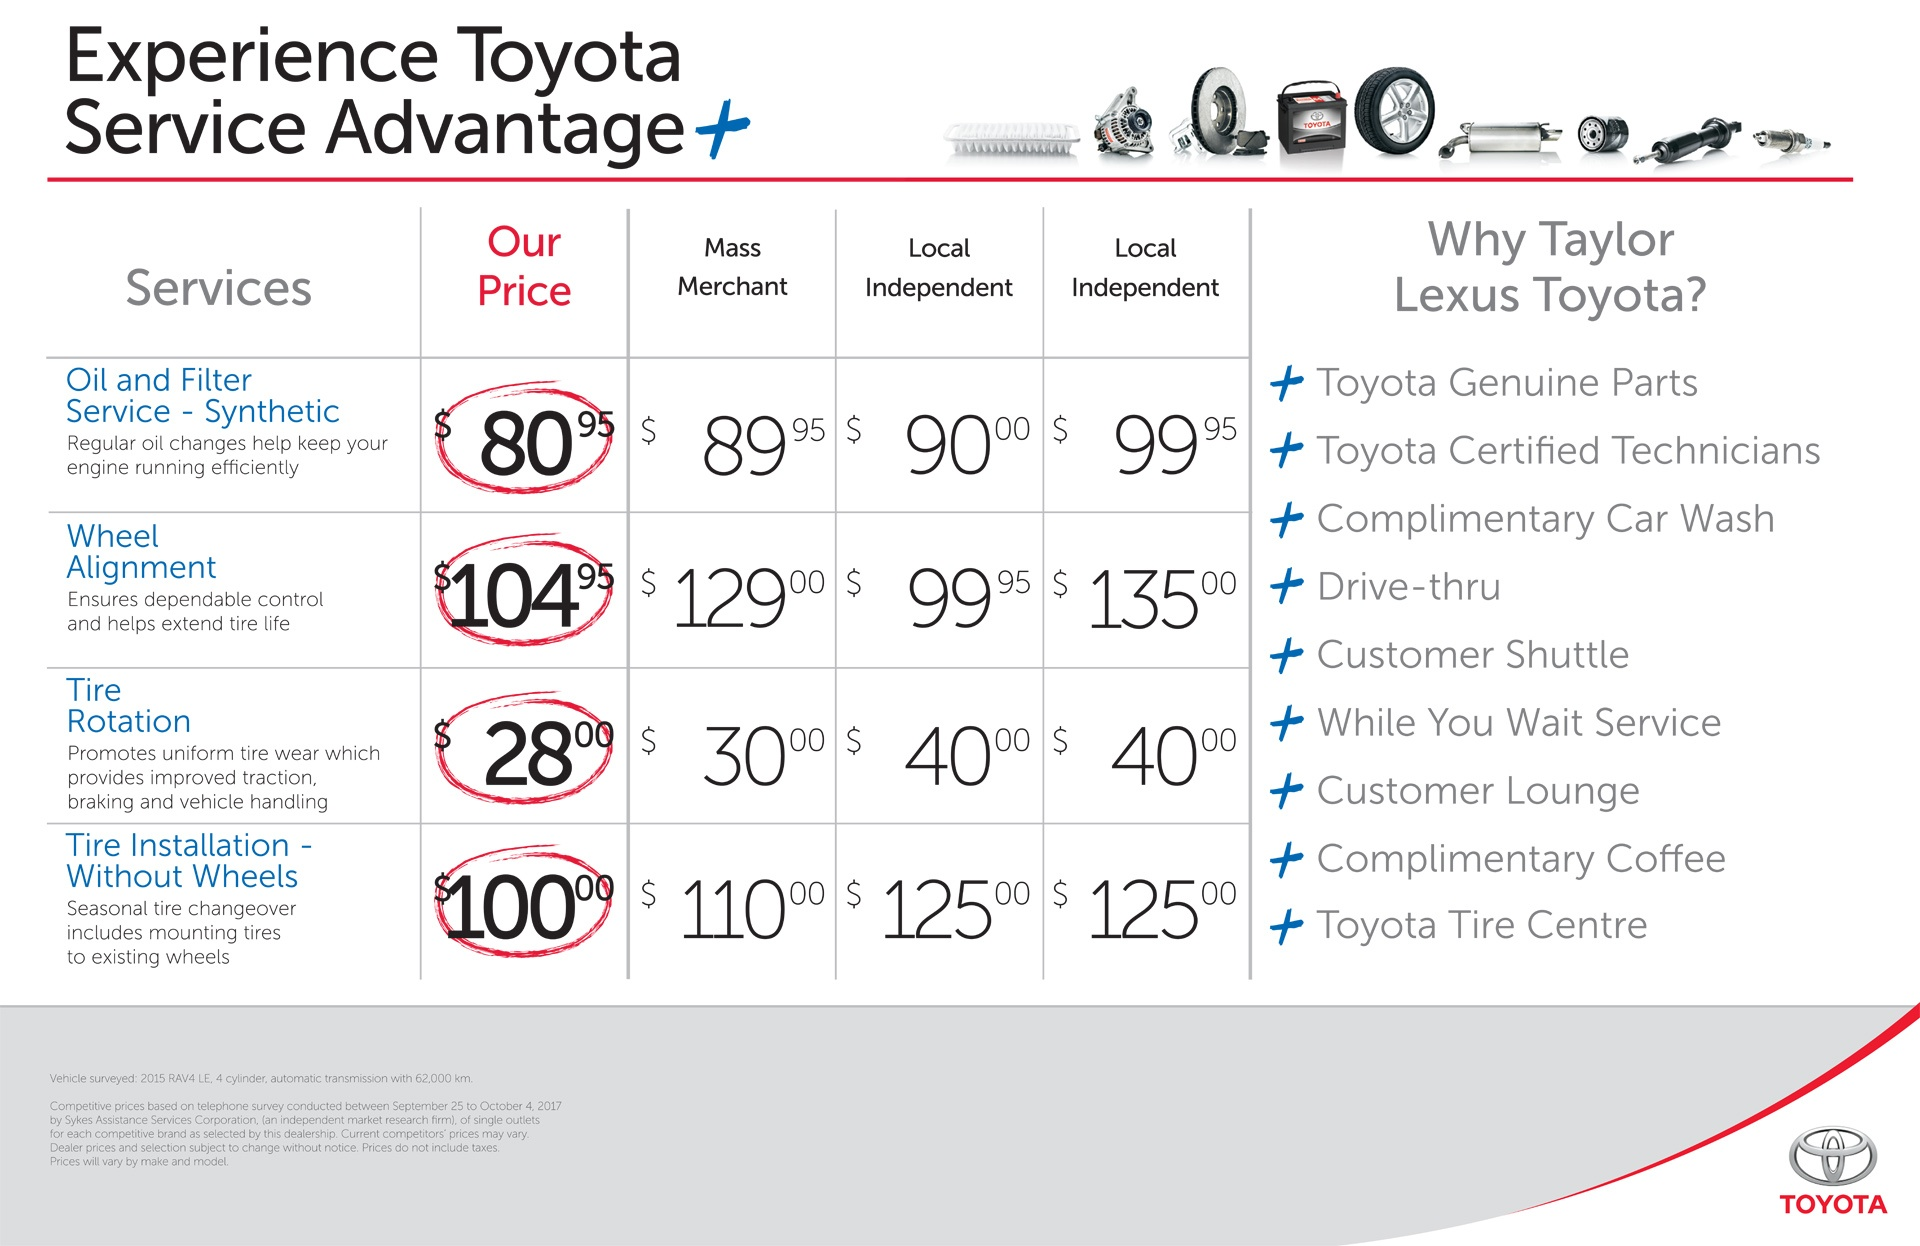 Compare Toyota Service Advantage